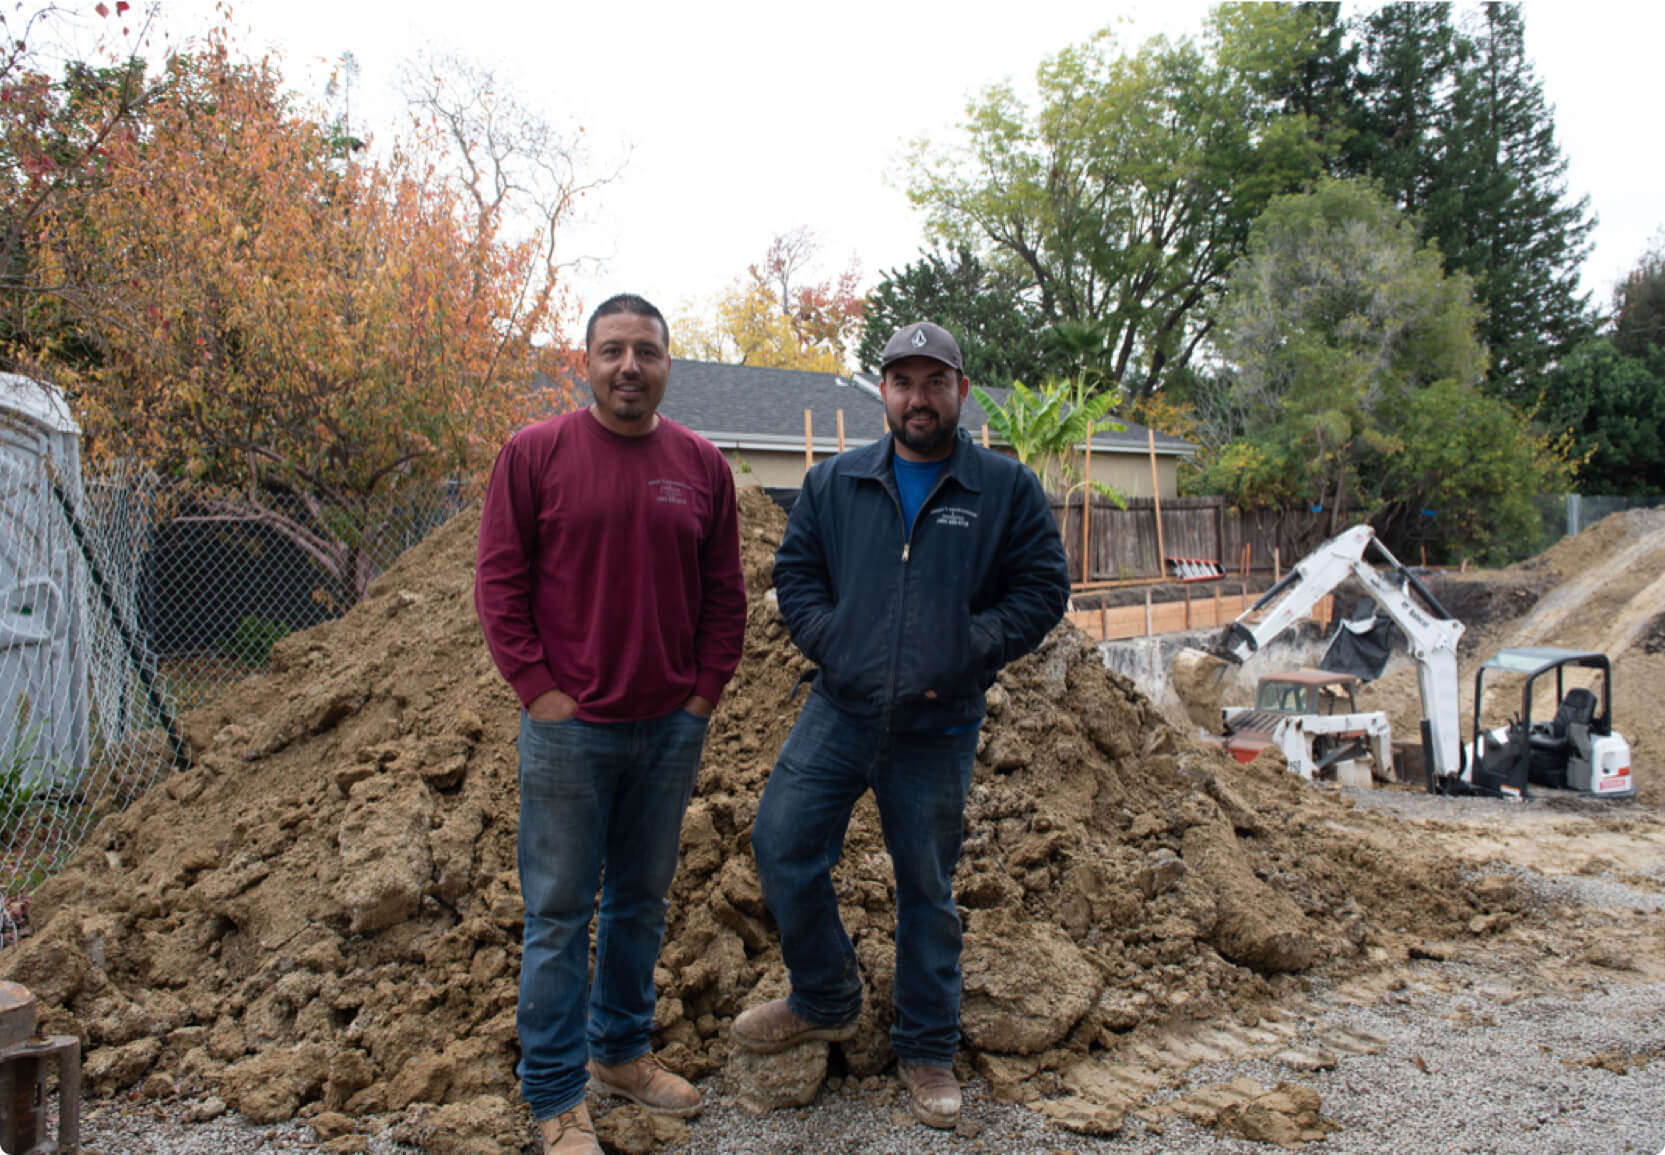 Hourly customer Angel's Excavation and Construction Edgar Ochoa with his co-worker on the field